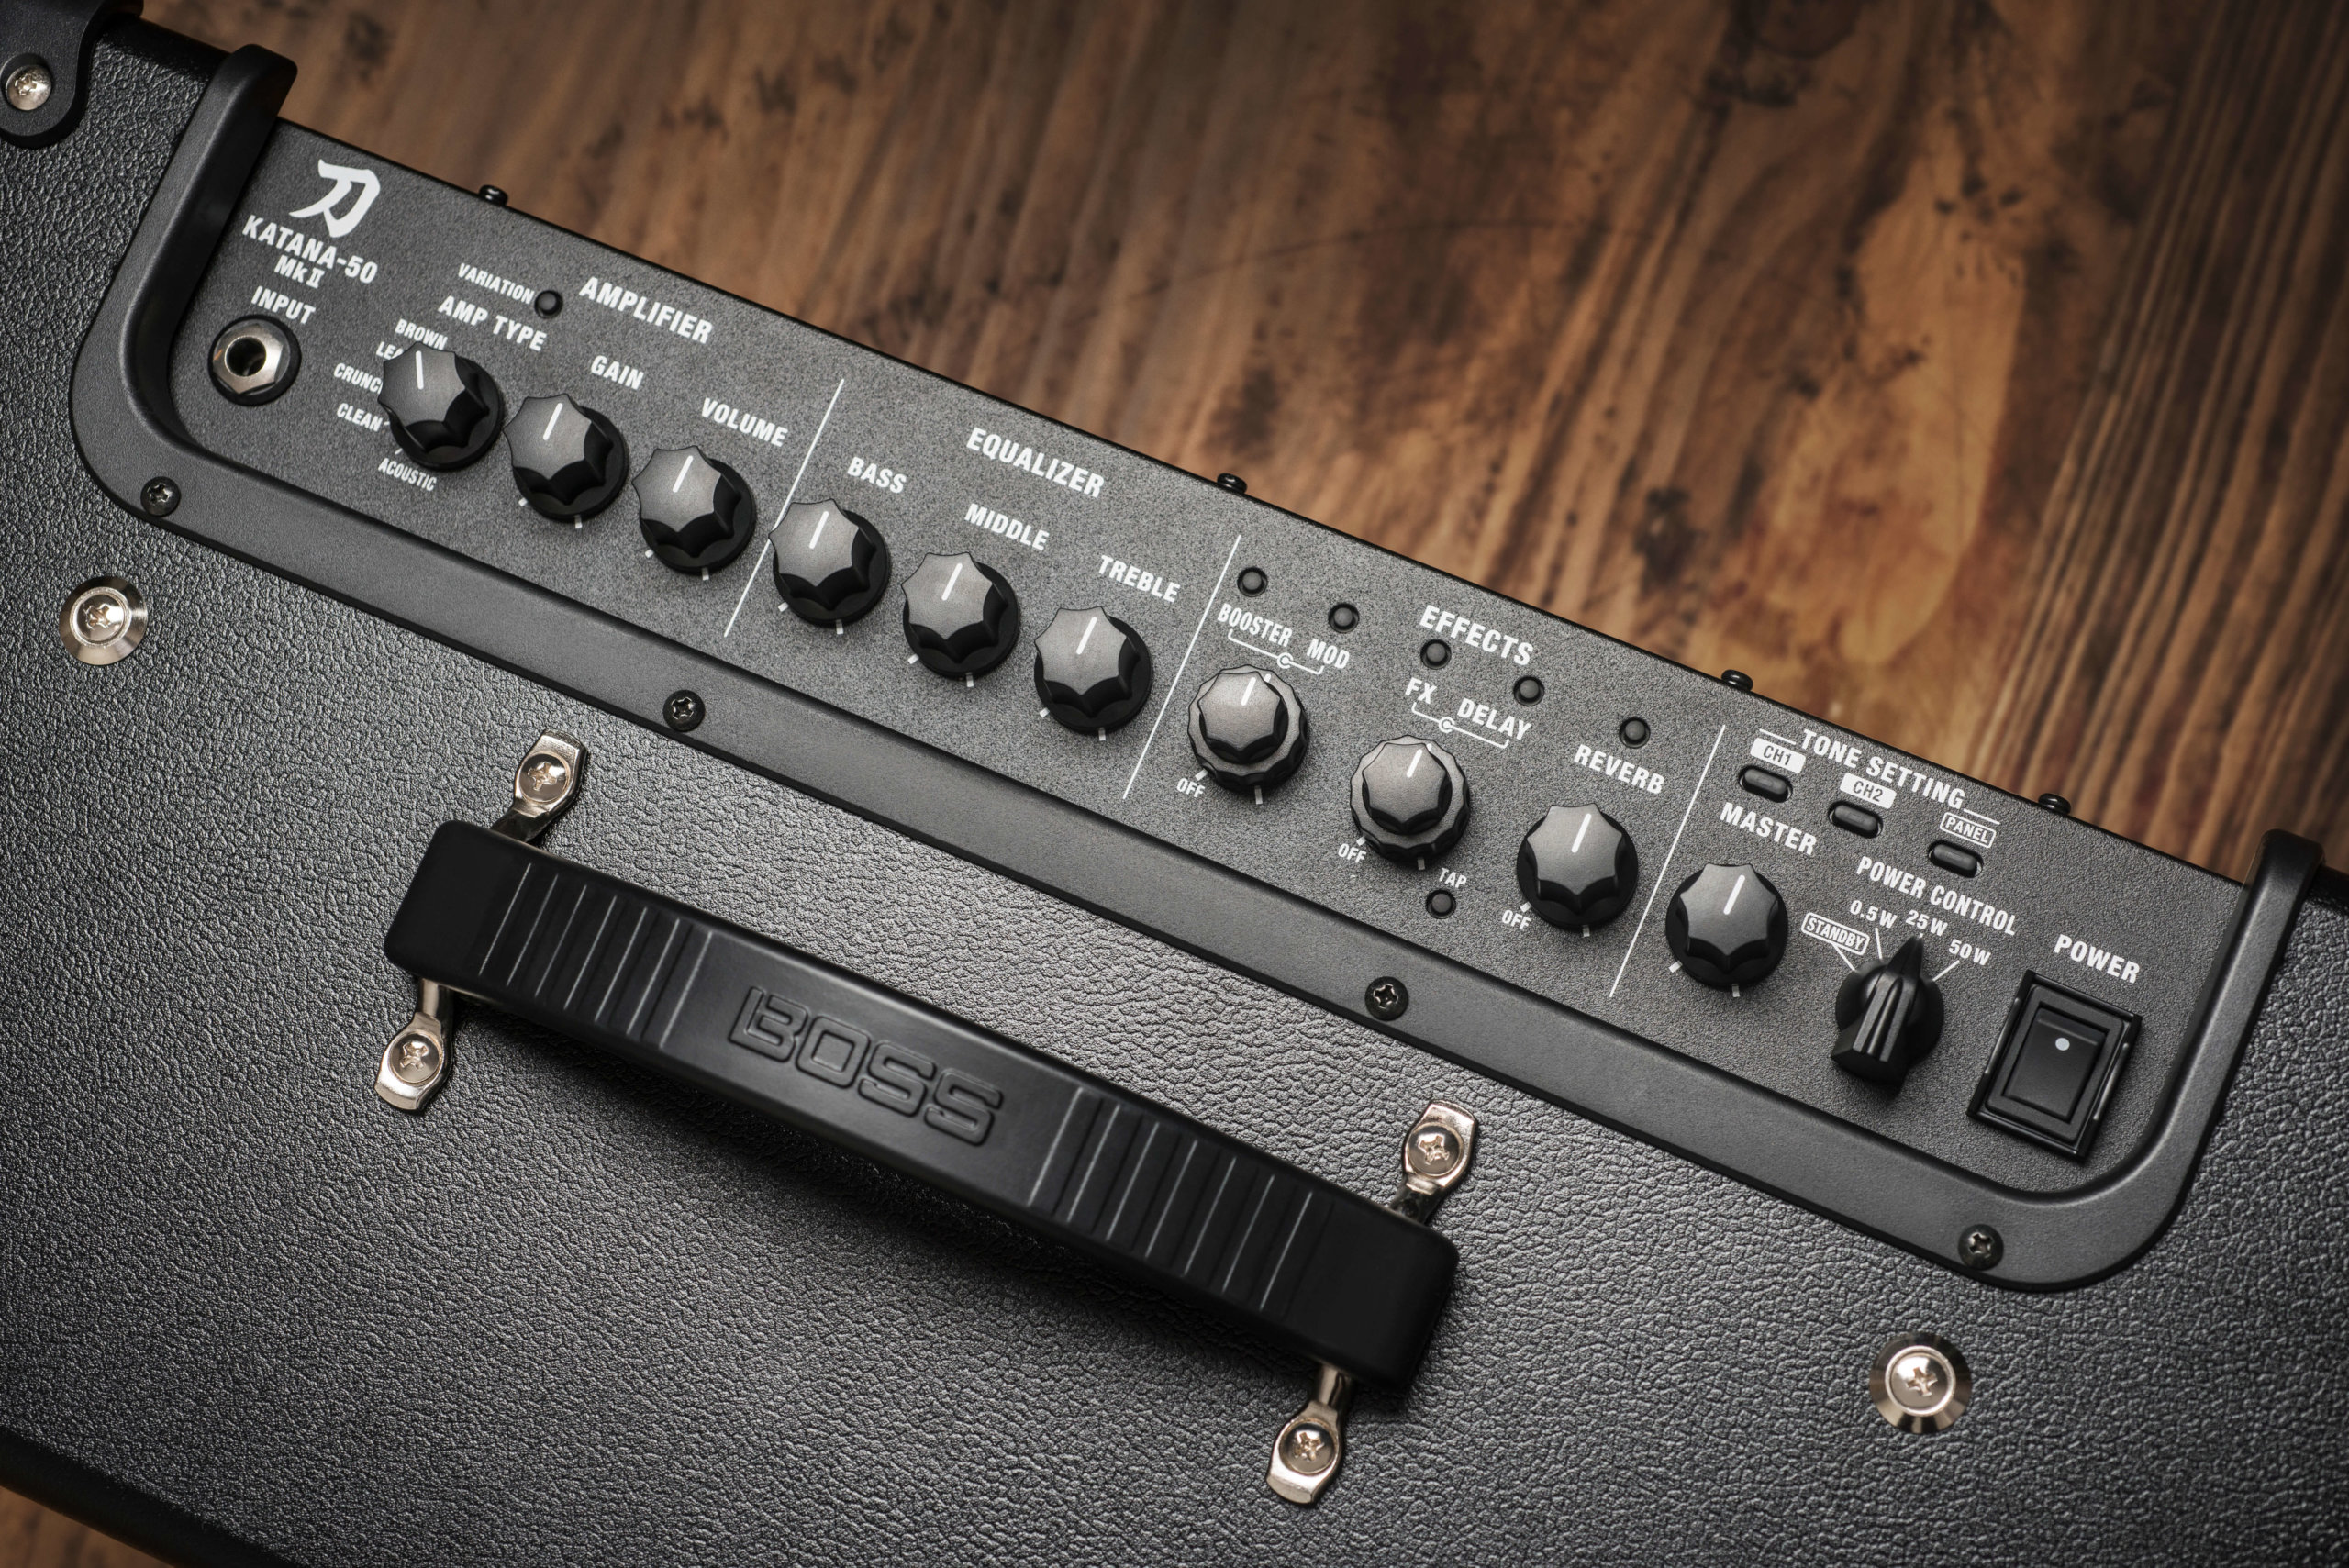 Best Modeling Amp 2021 The best guitar amps to buy in 2020: 12 best modelling amplifiers